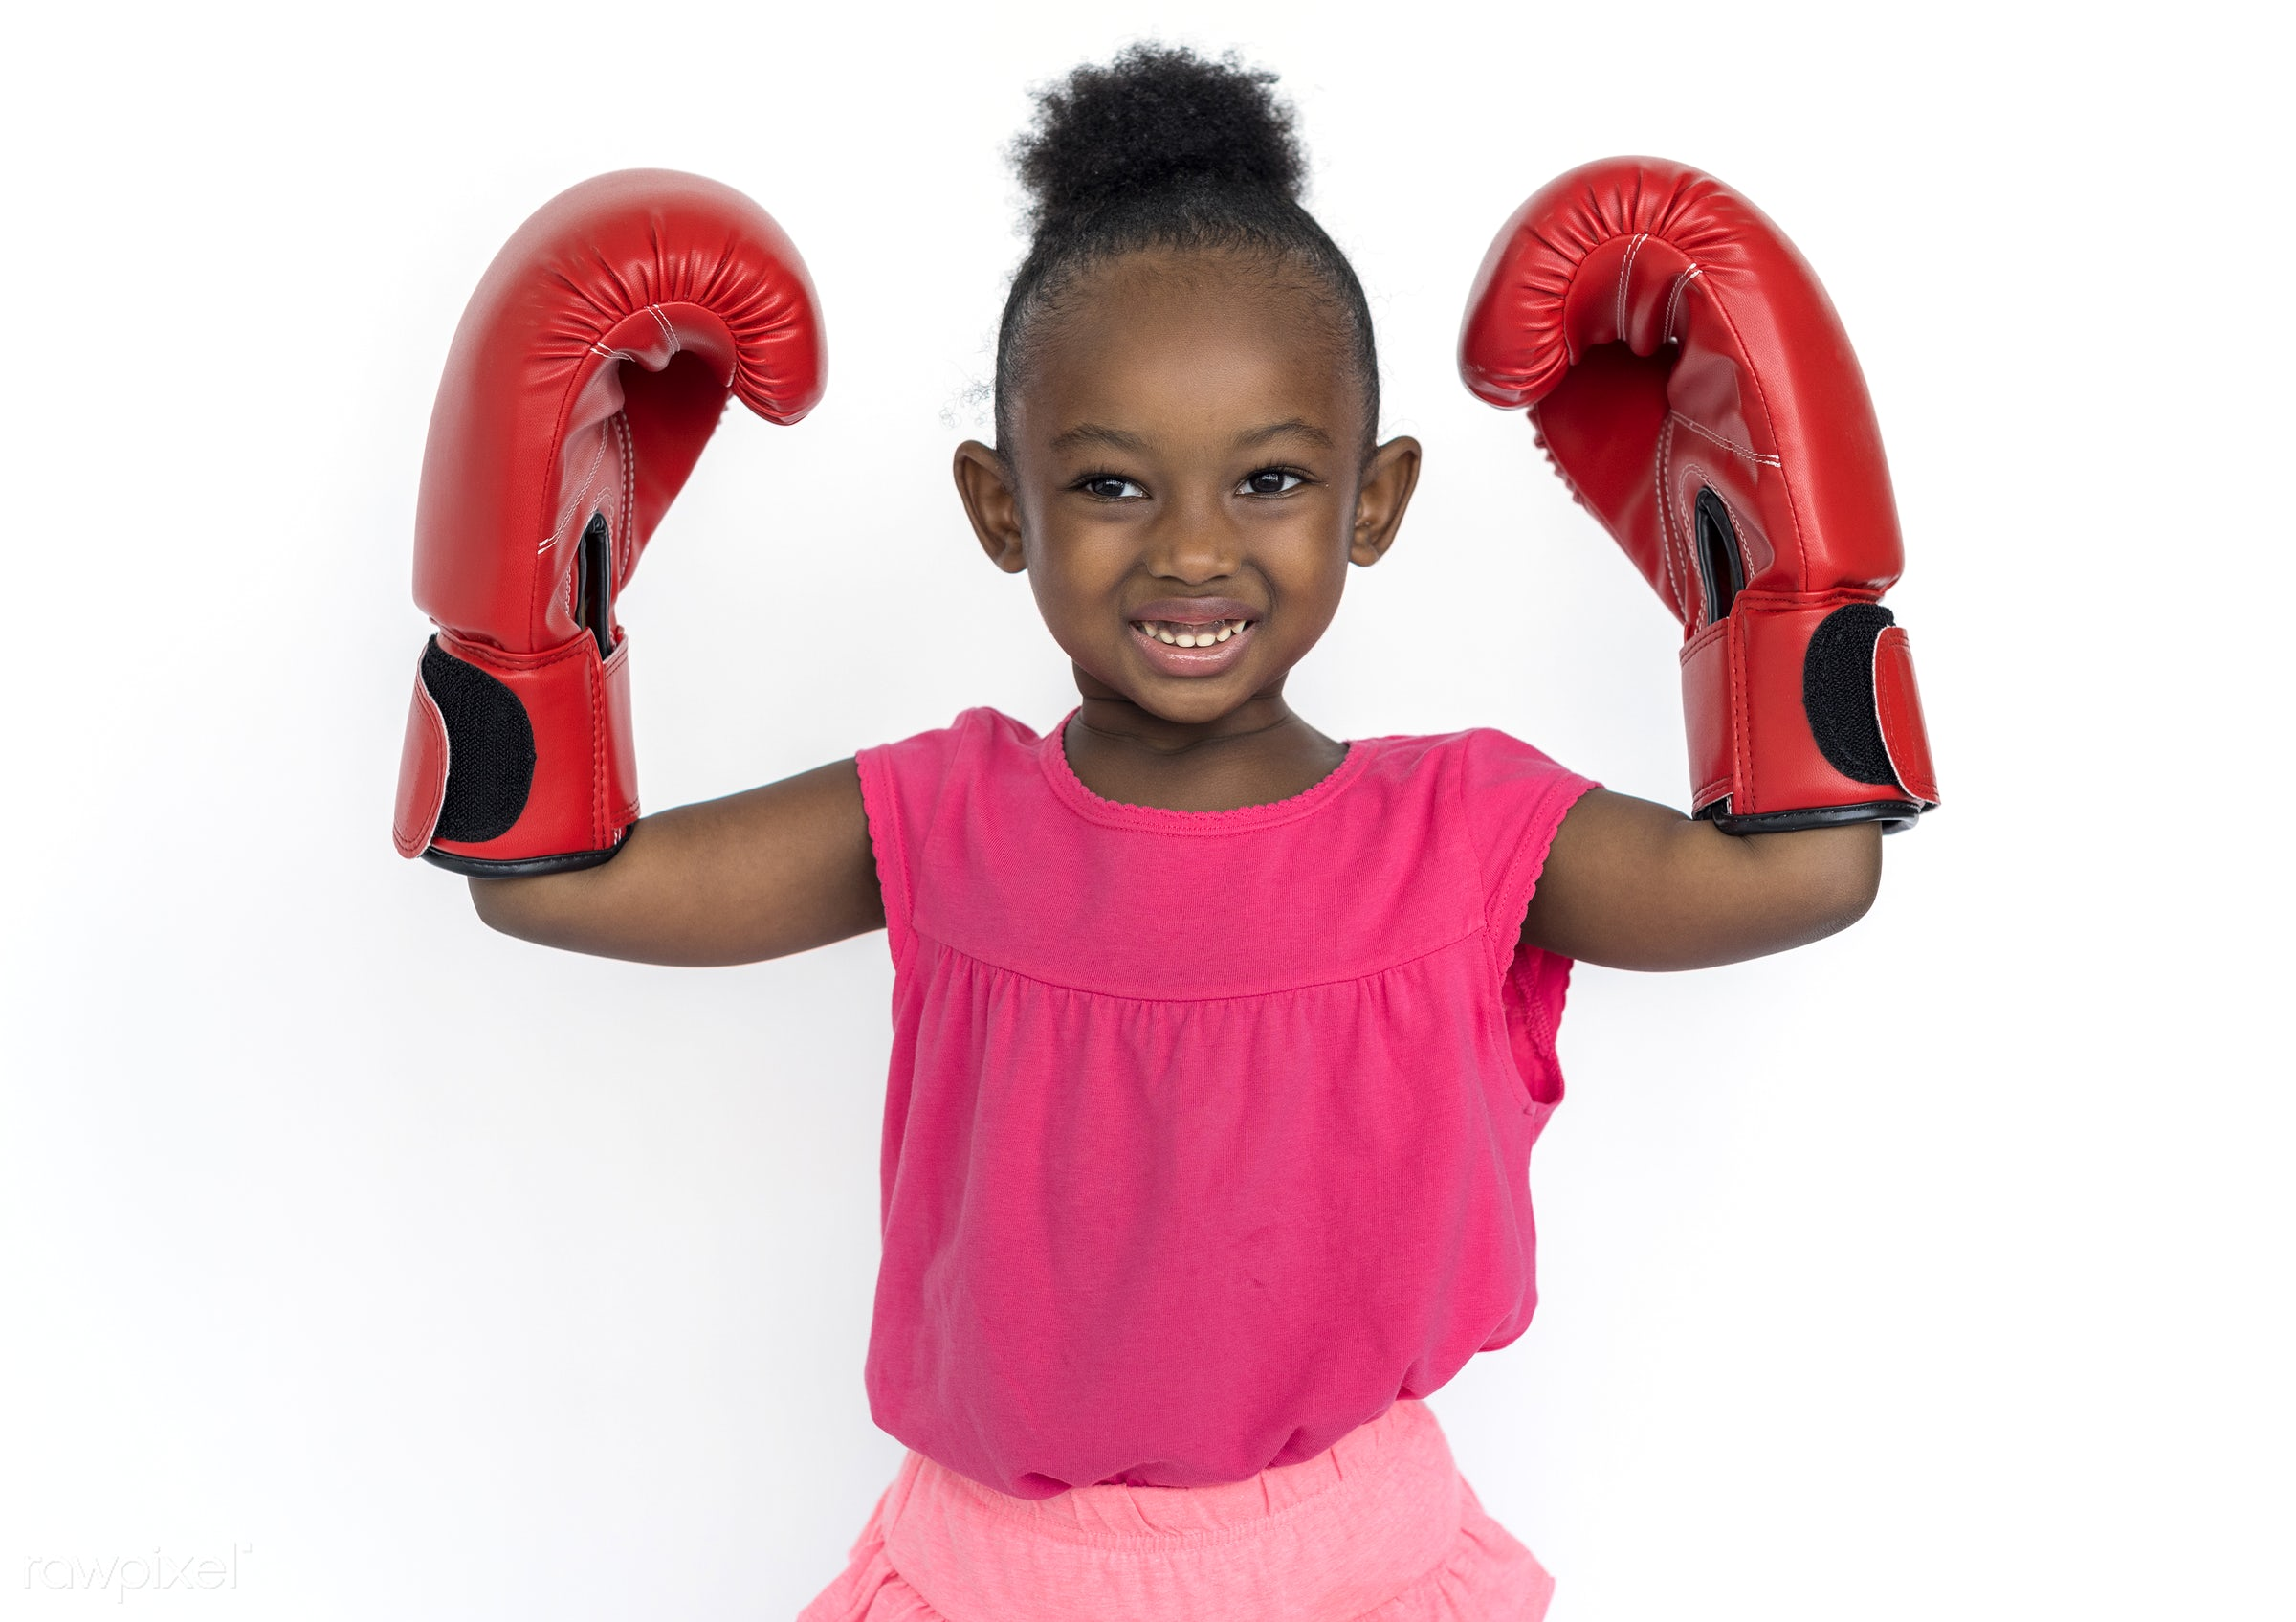 studio, expression, person, people, kid, childhood, smile, cheerful, smiling, punch, isolated, little girl, african descent...